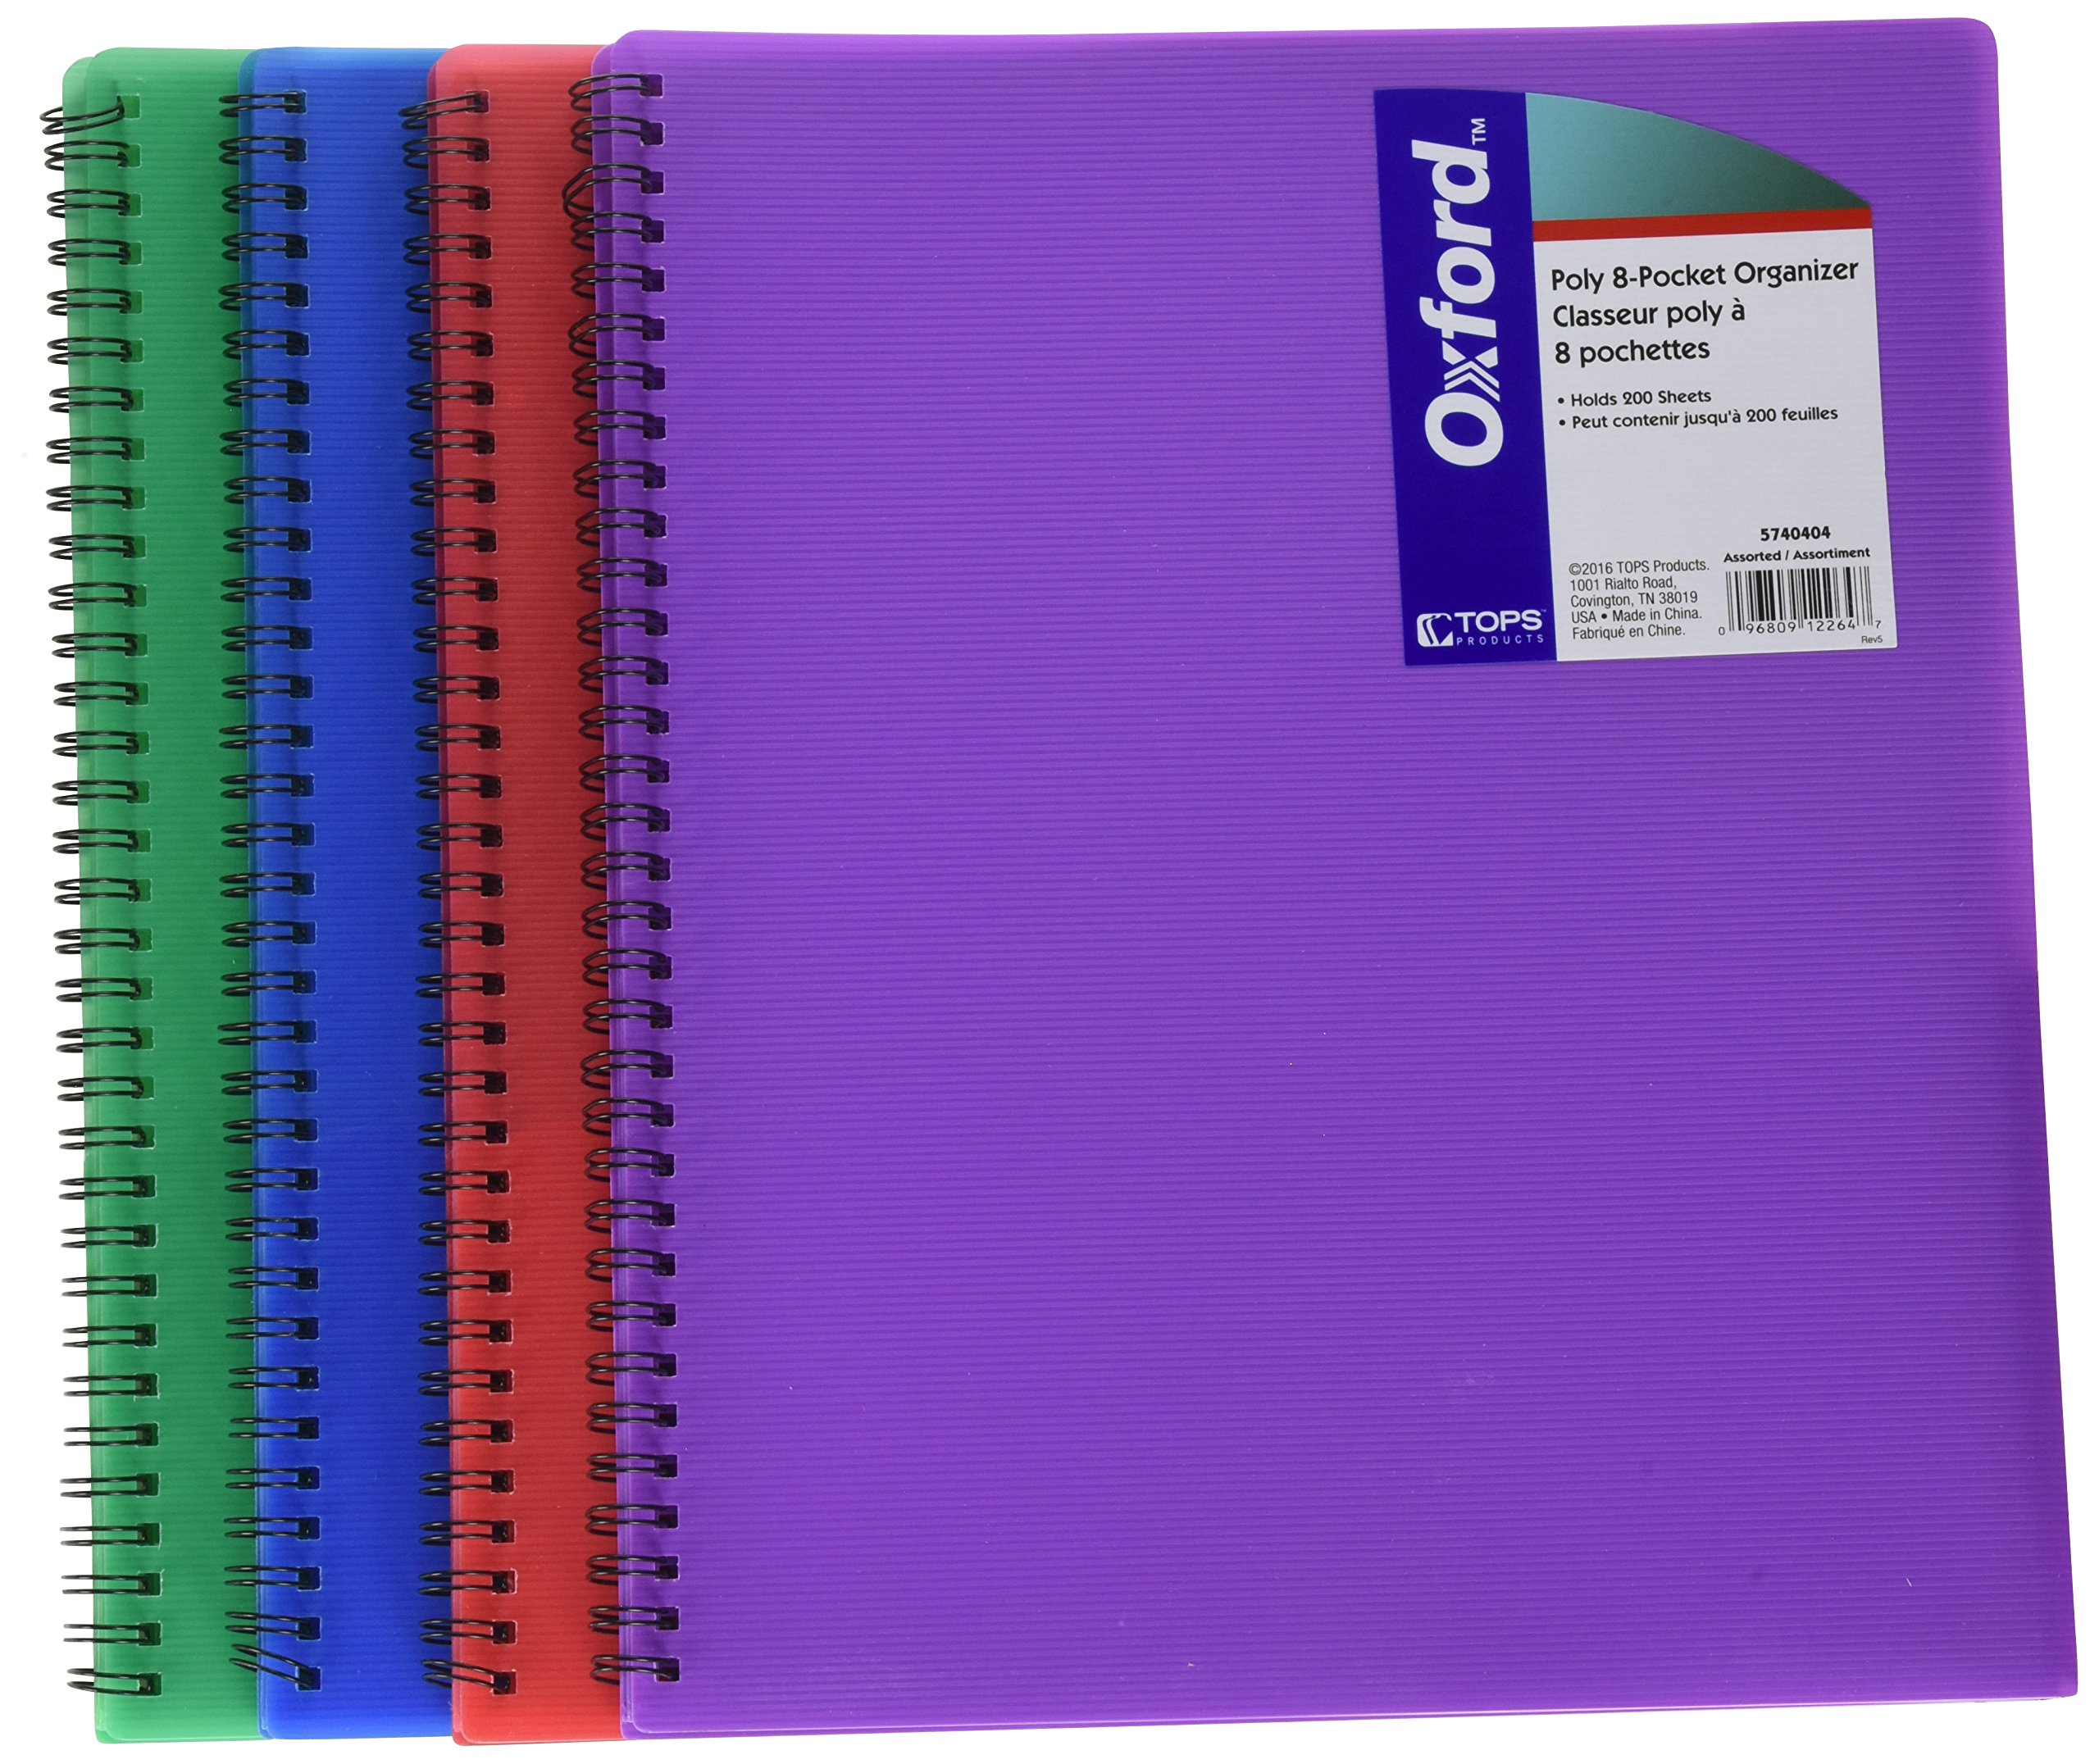 Oxford Poly Organizer Asst 8.5x11 8 Pocket 5740404 Pack Of 20